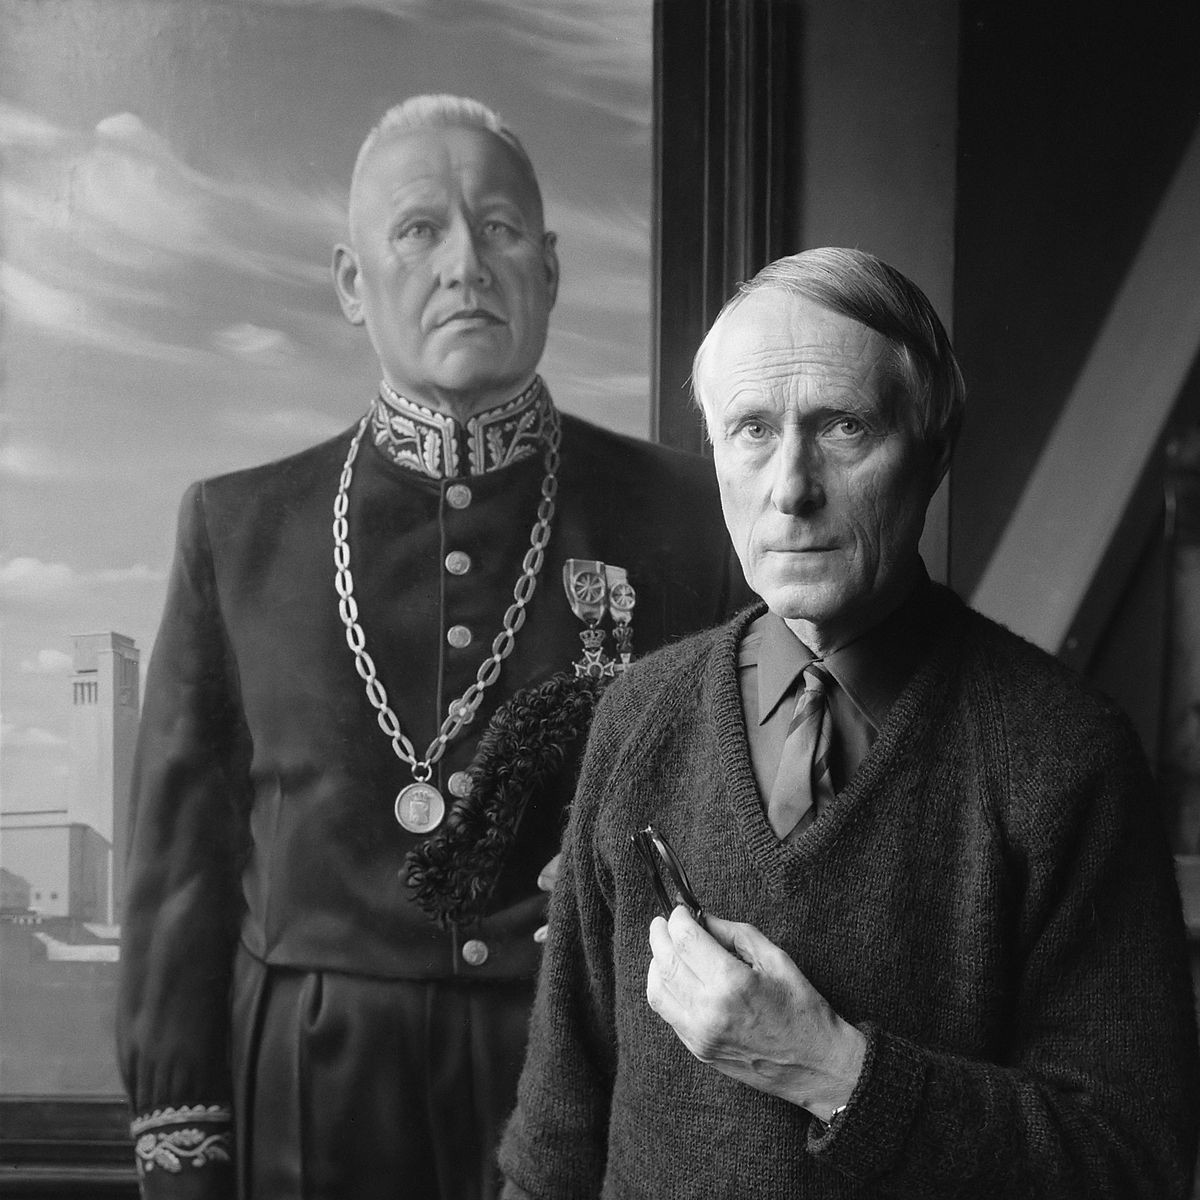 Carel Willink- Life, paintings, contribution, death- Easy explanation | artandcrafter.com Magic realism